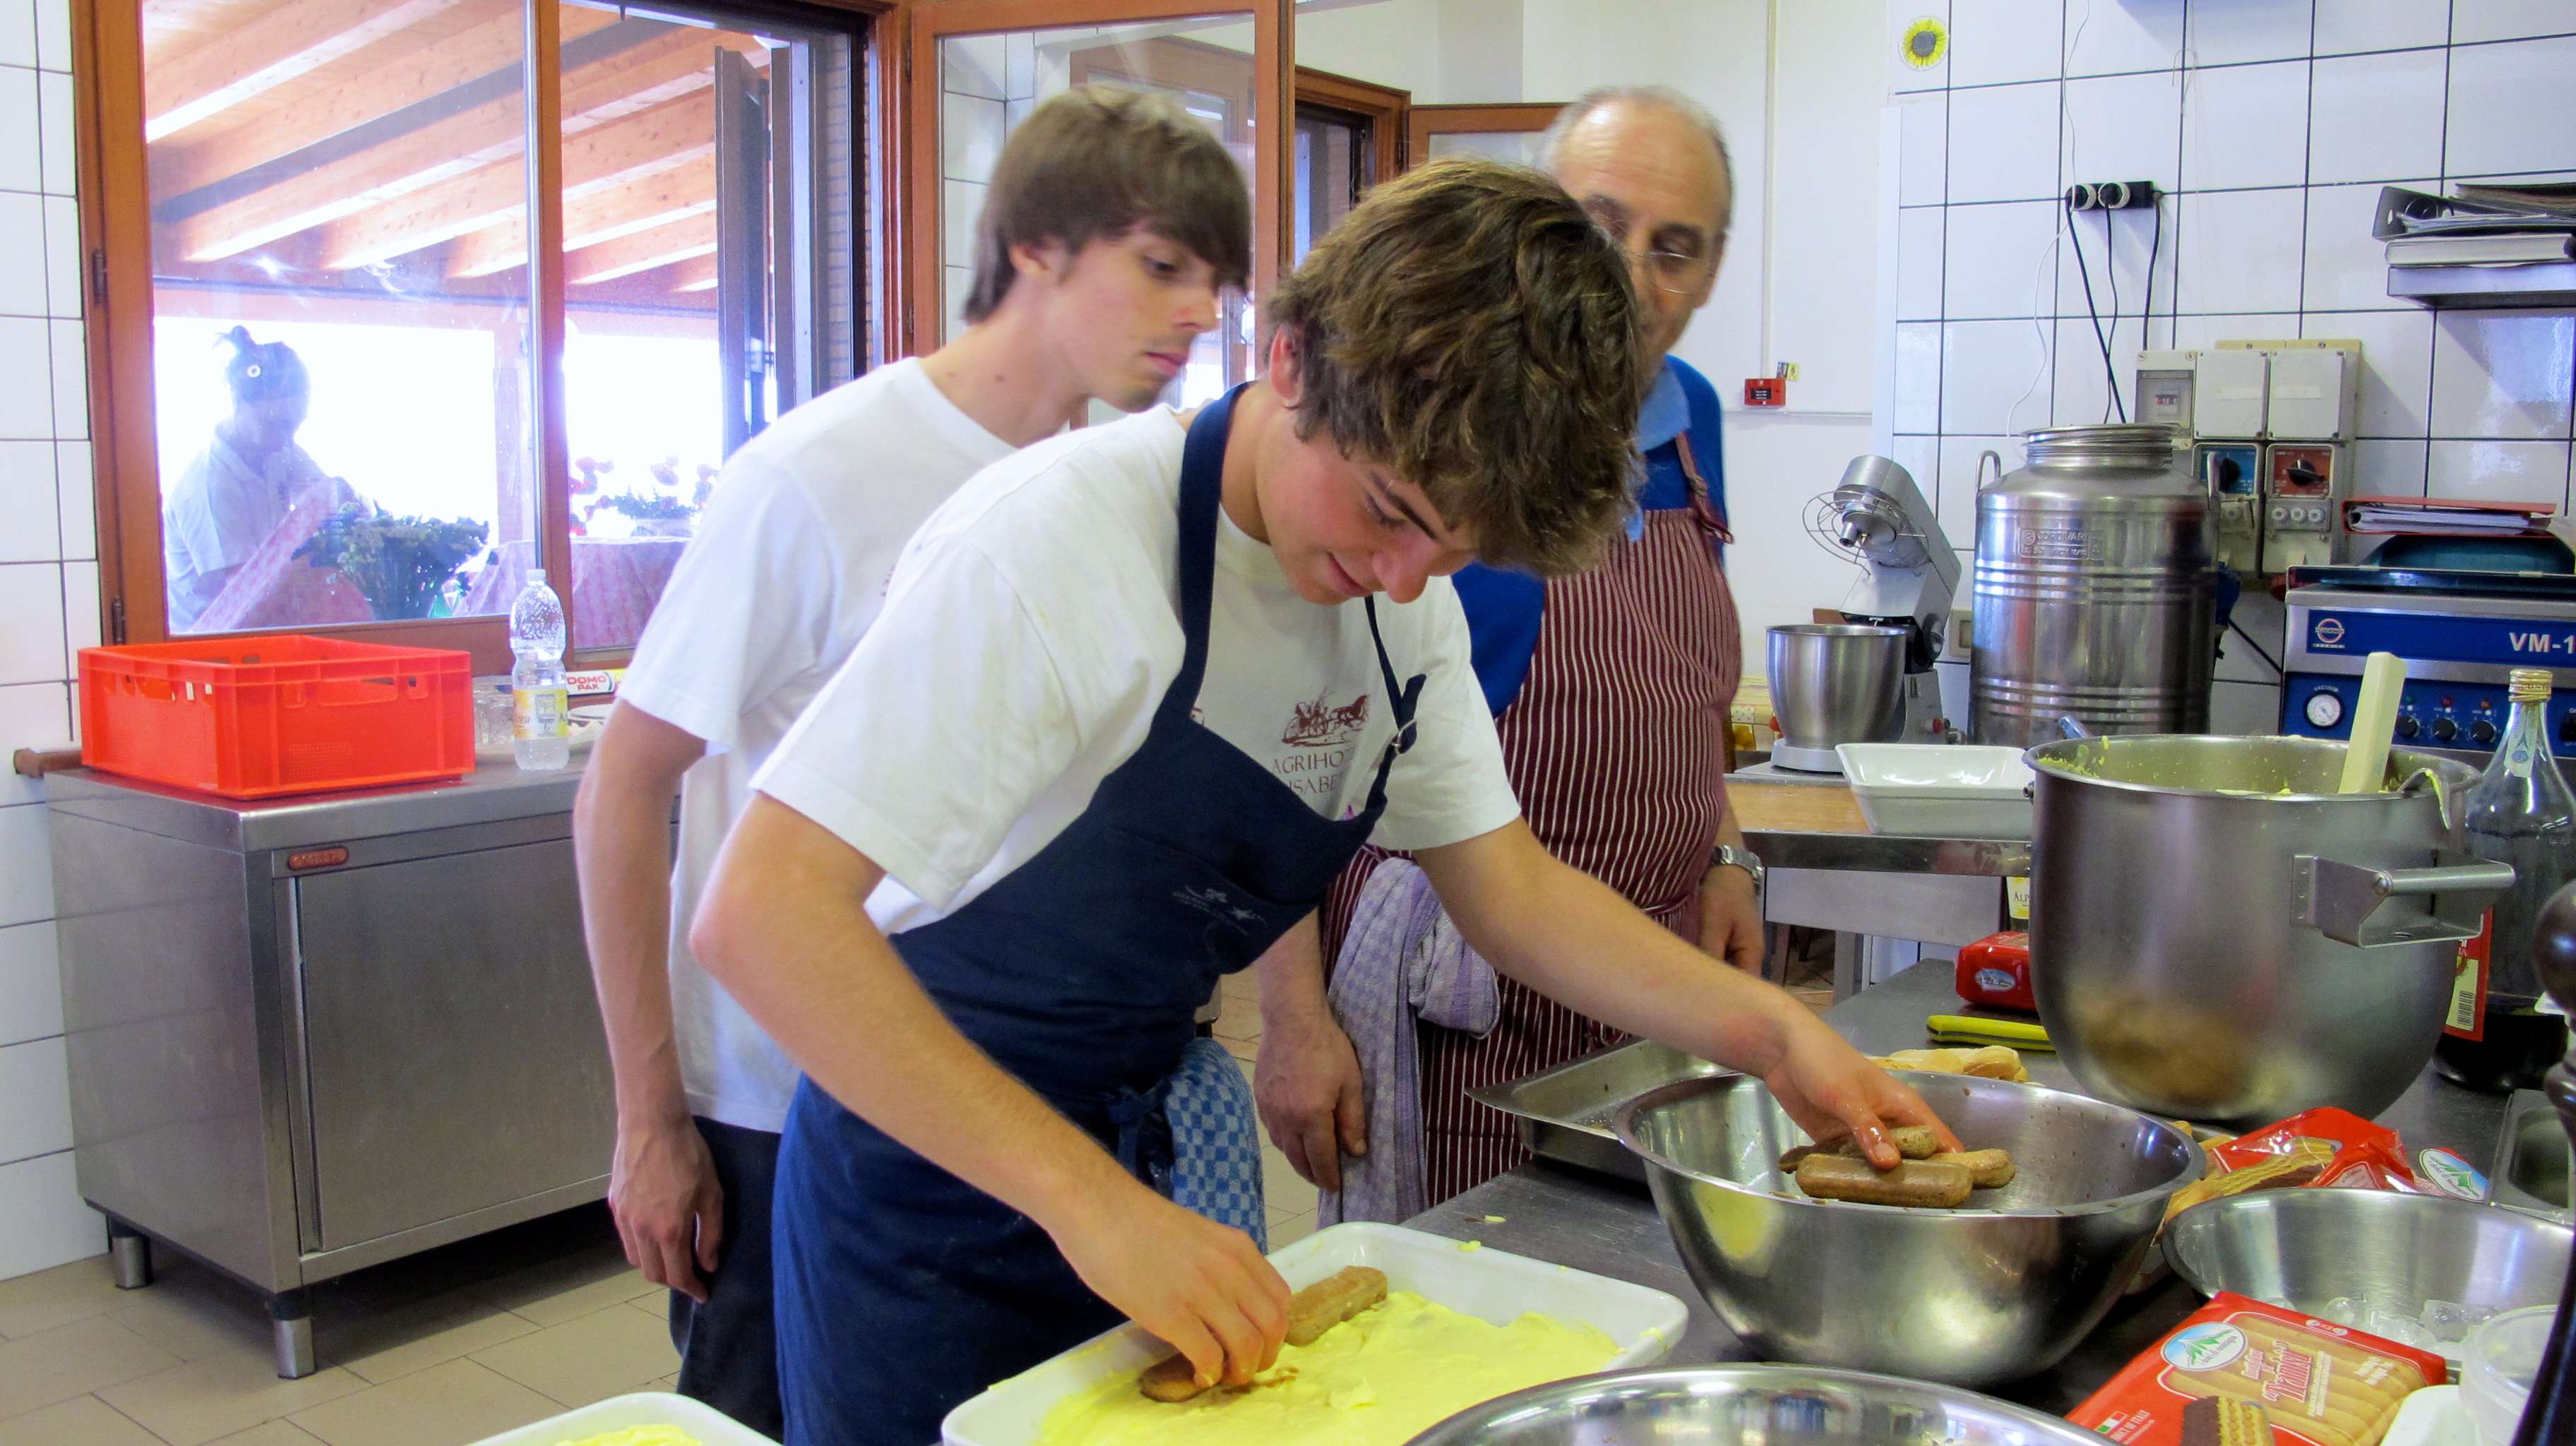 My friend, Léon, and Sou Chef, Matteo, watch as I prepare the tiramisú.